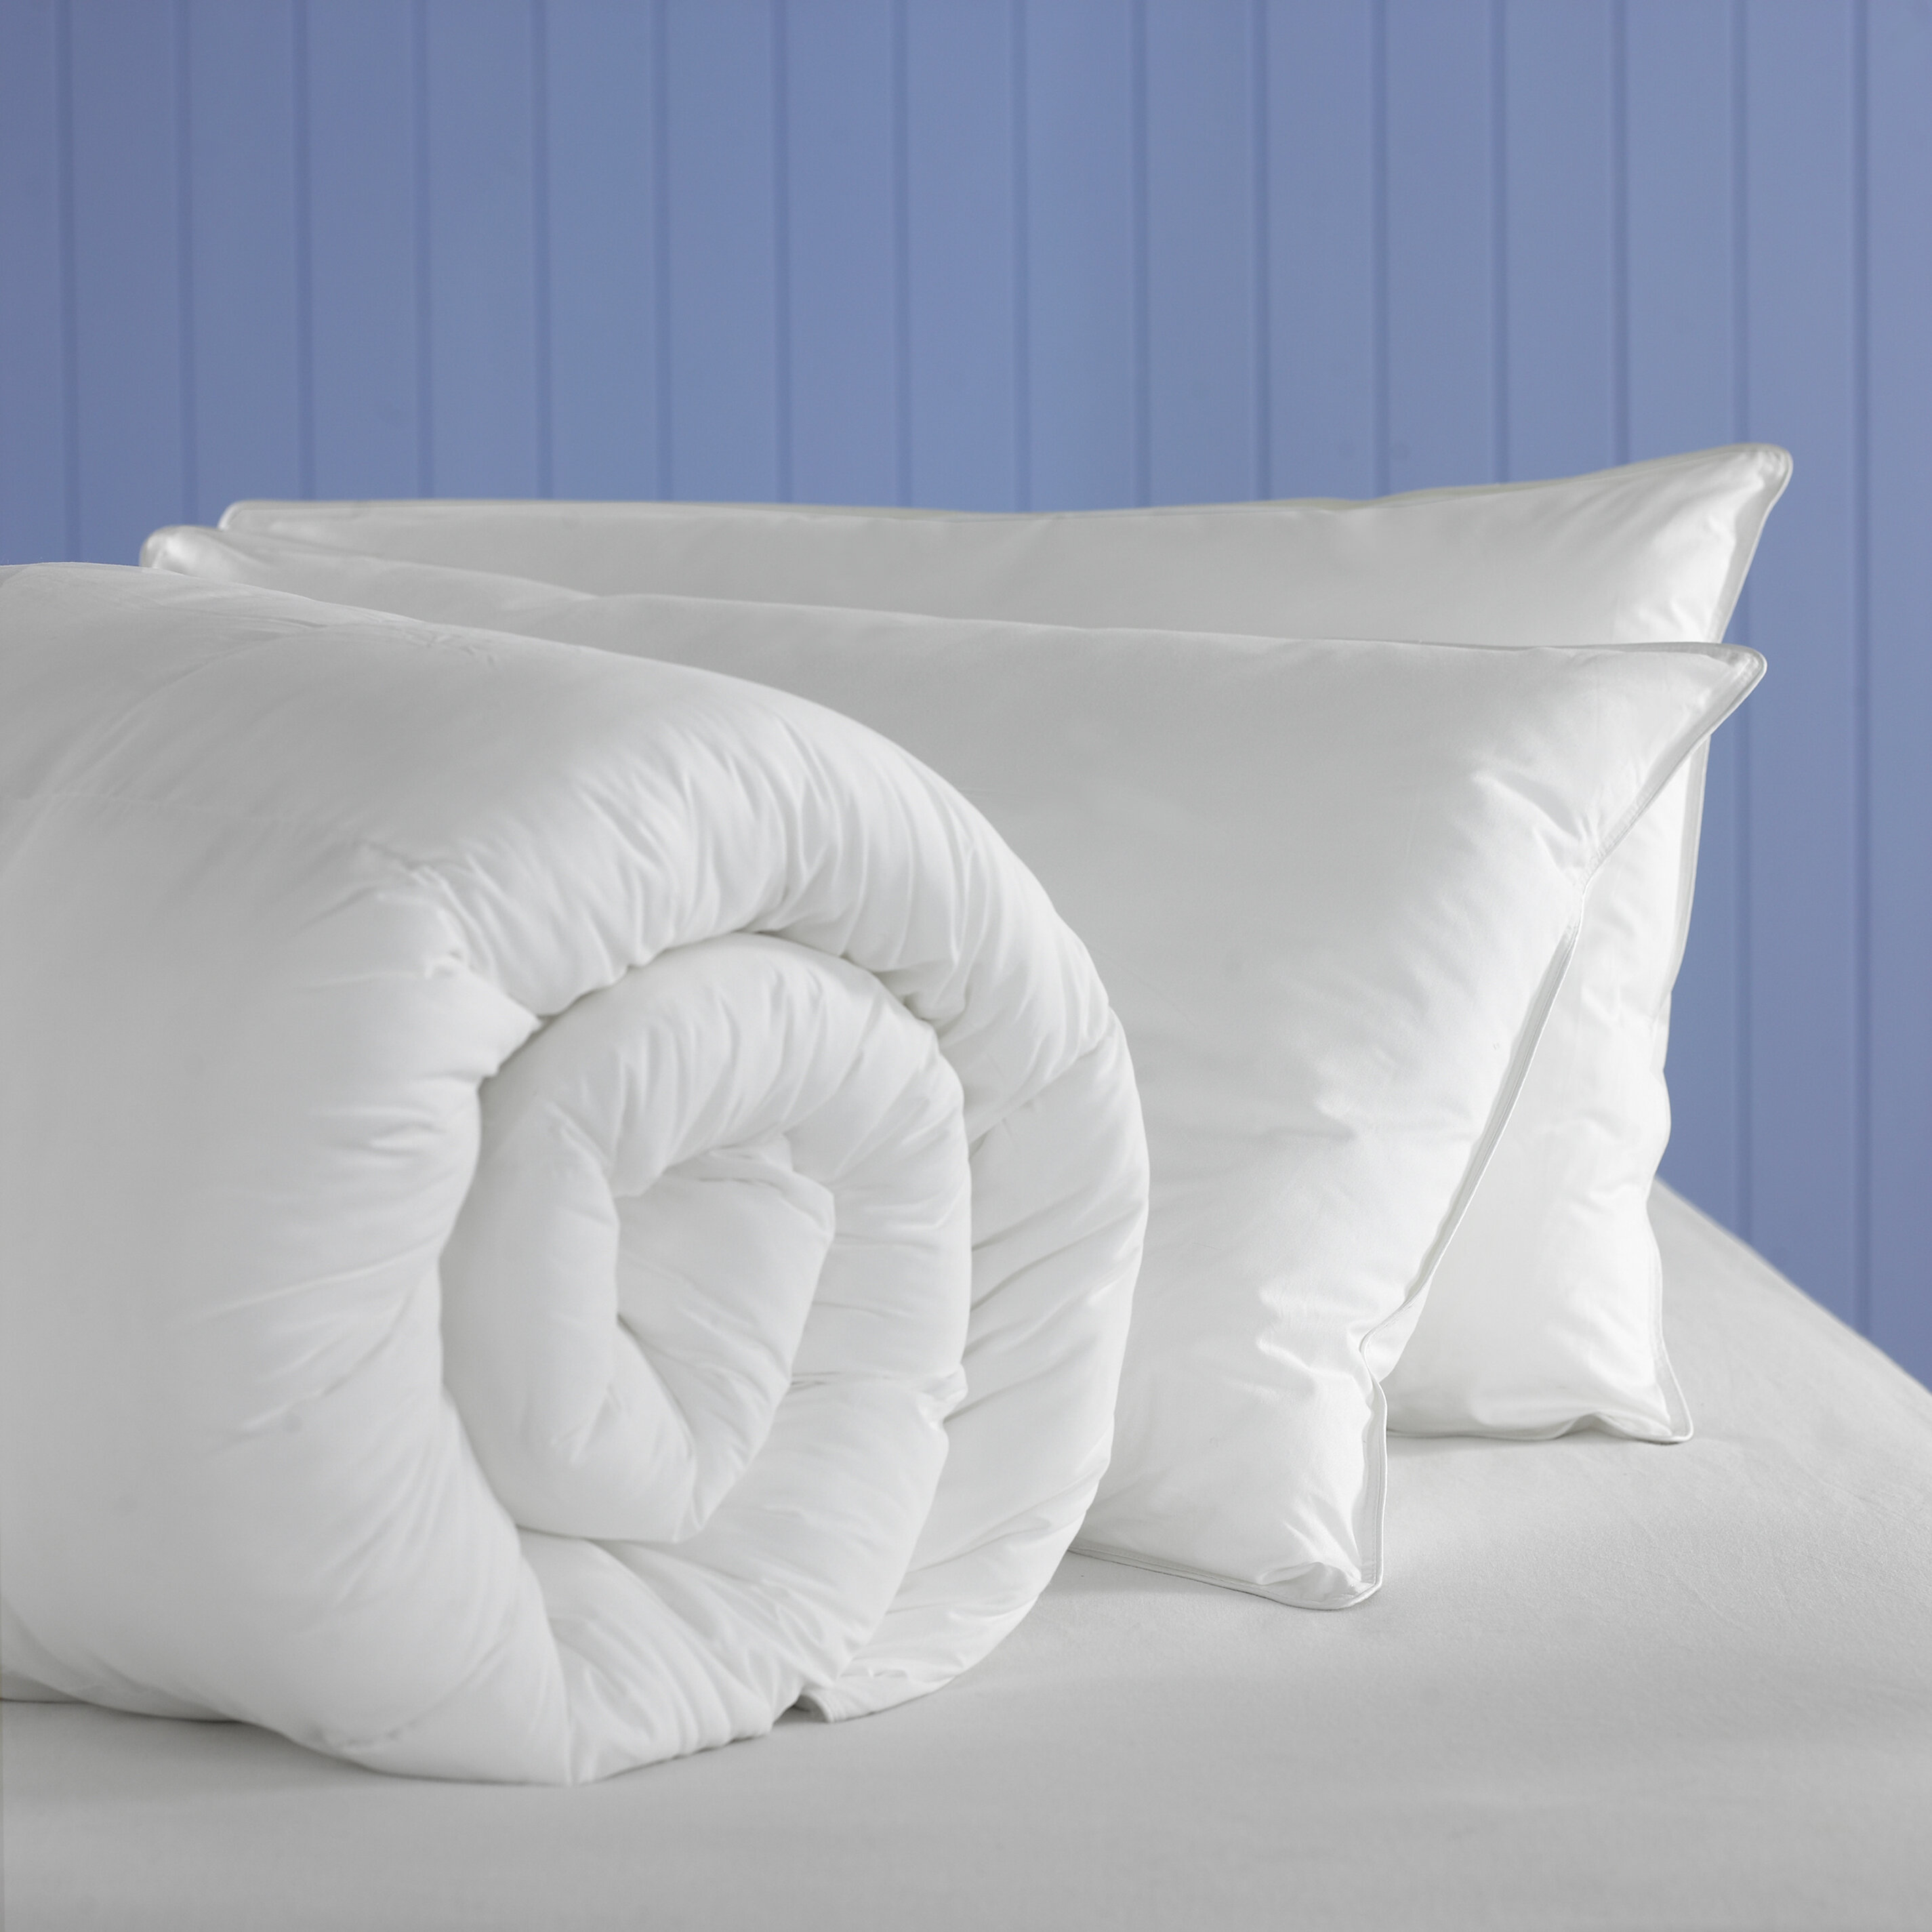 Soft As Down Polyester 4 5 Tog Duvet By The Pillow Company